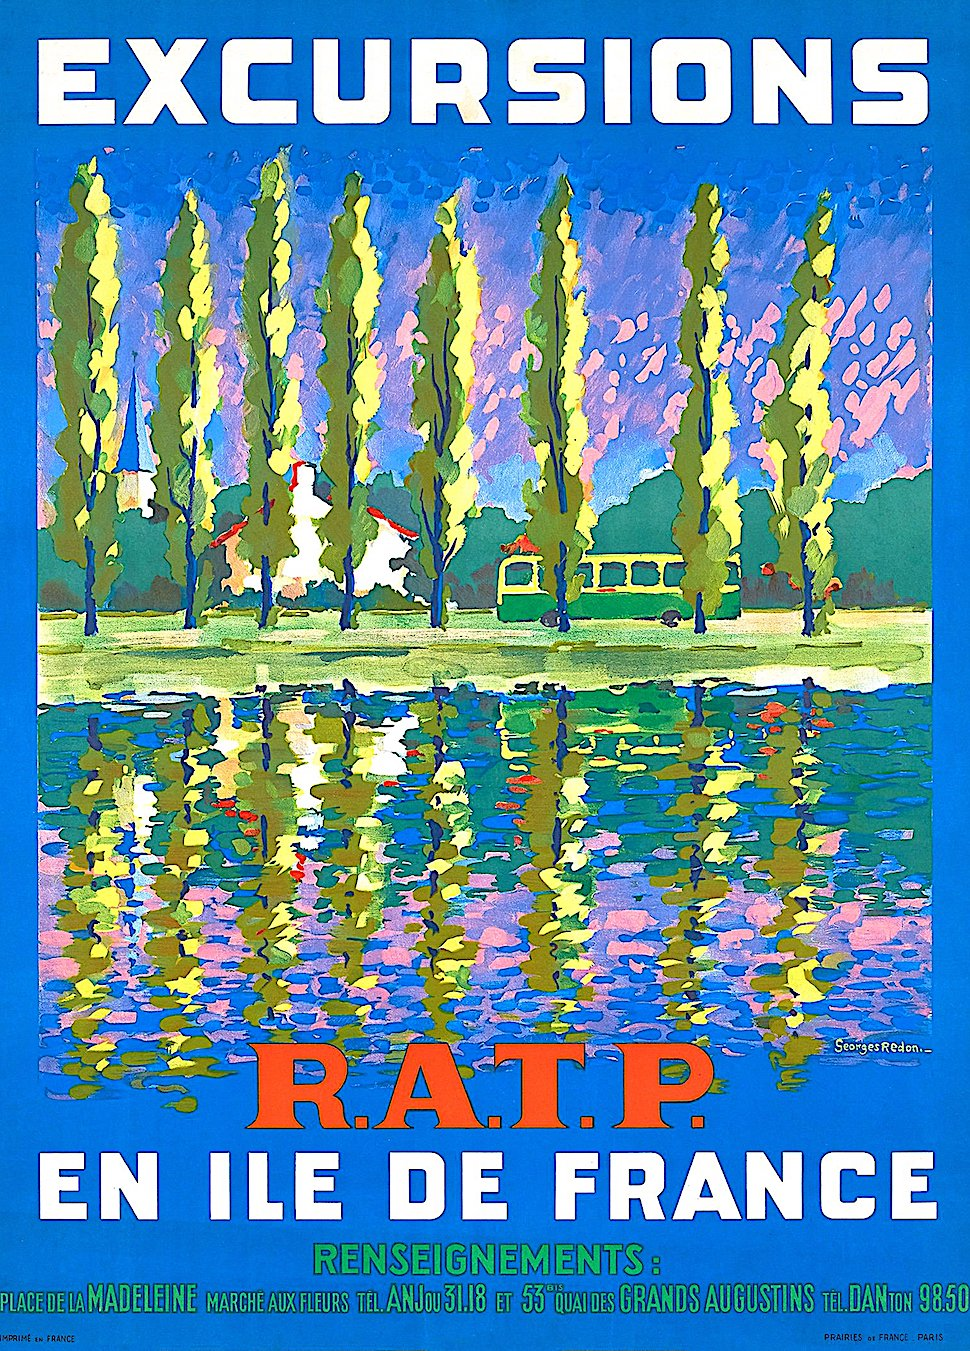 a Georges Redon 1958 travel poster for French bus excursions, R.A.T.P en ile de France, colorful trees